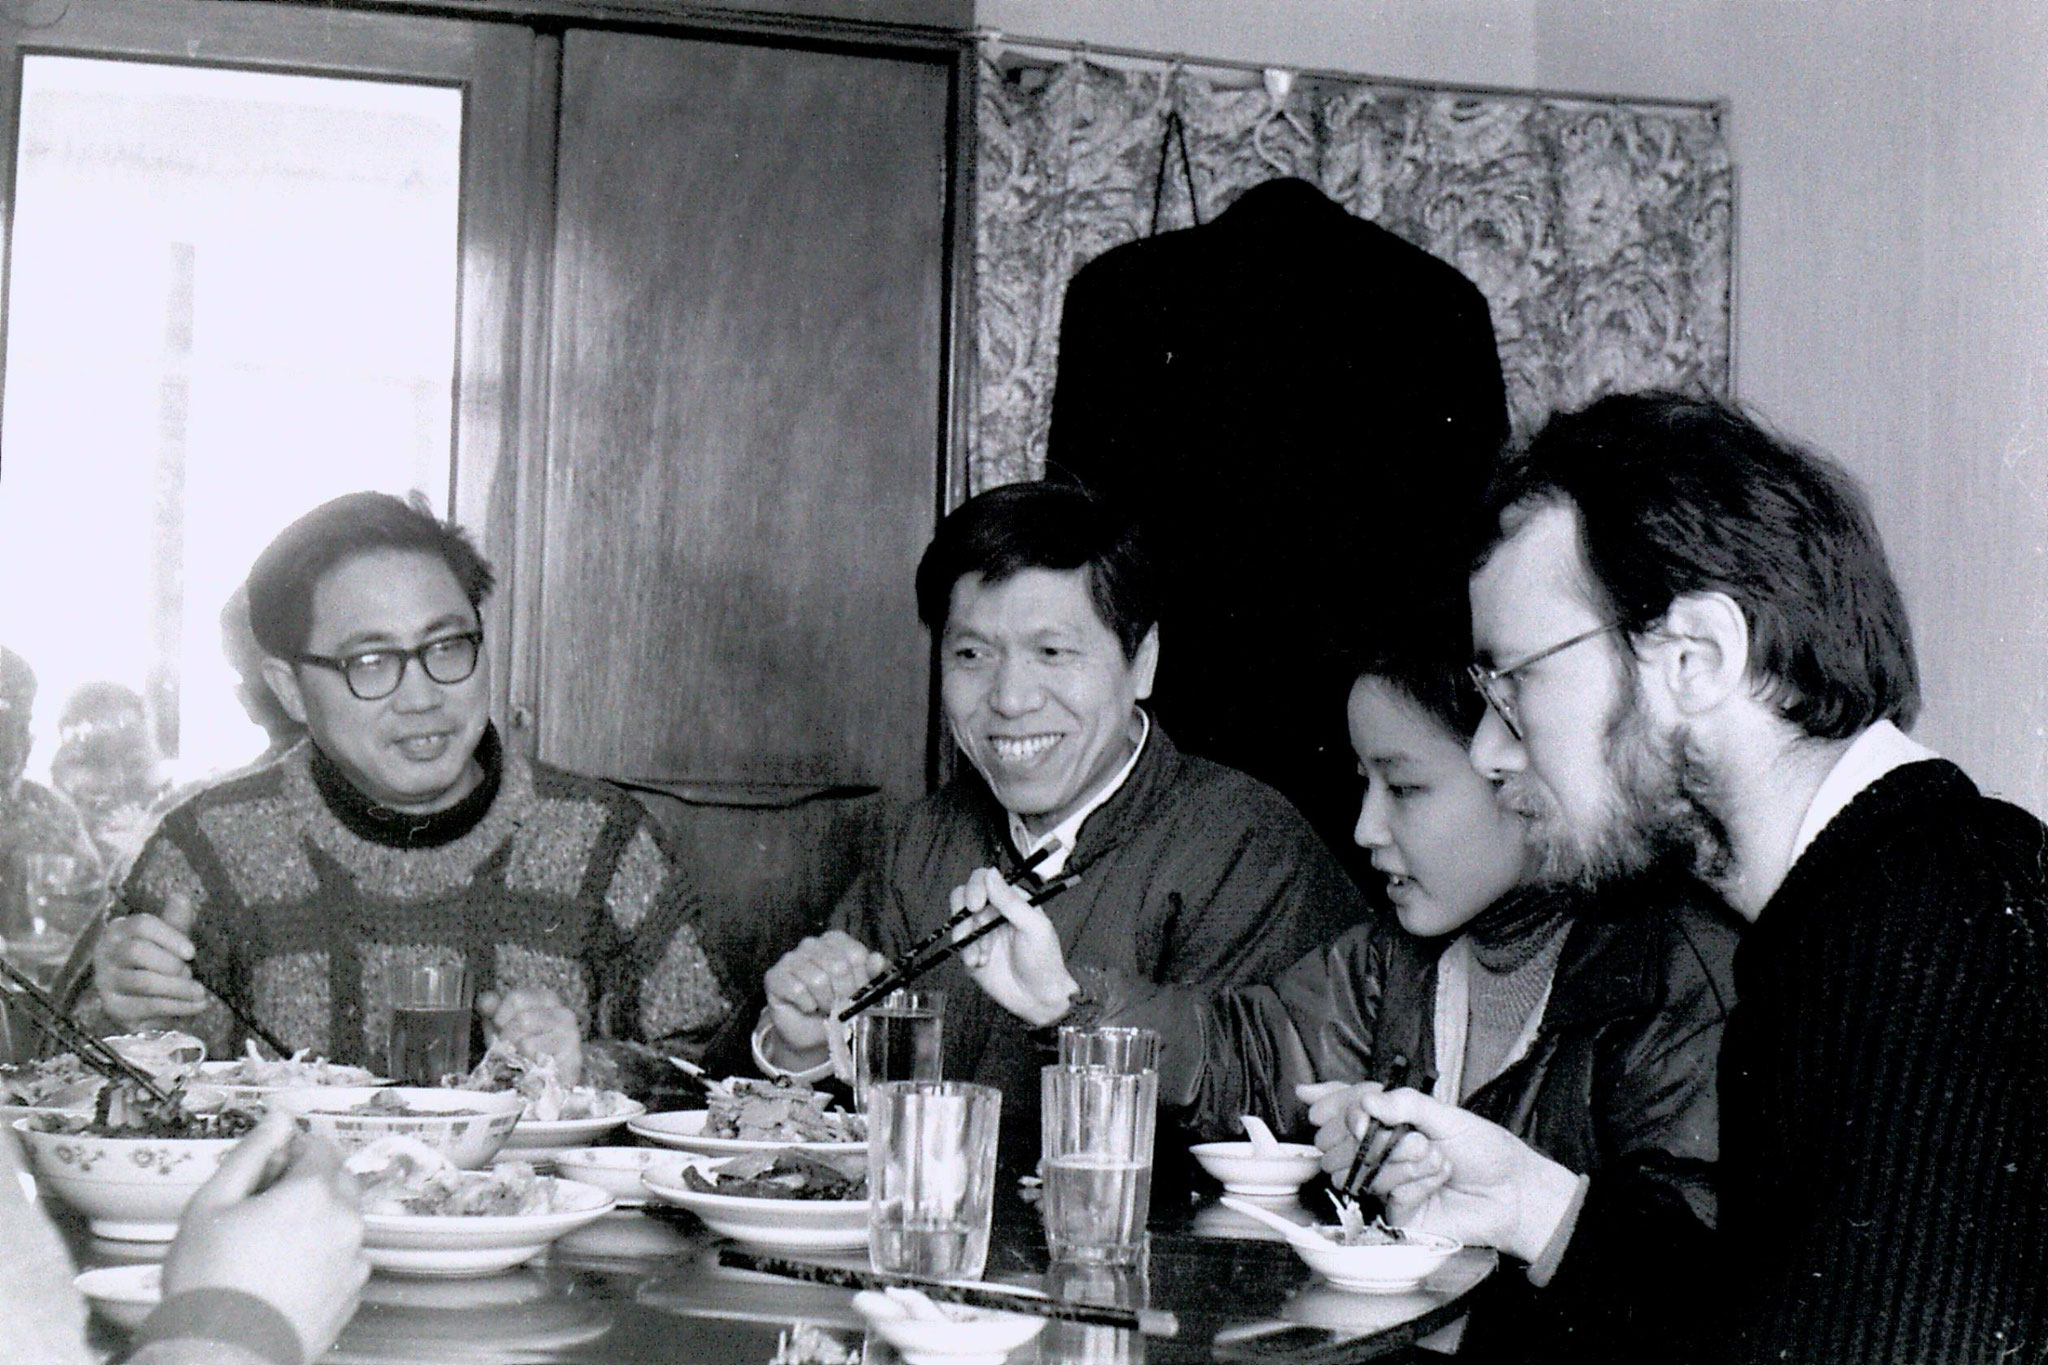 11/2/1989: 7: Shanghai lunch